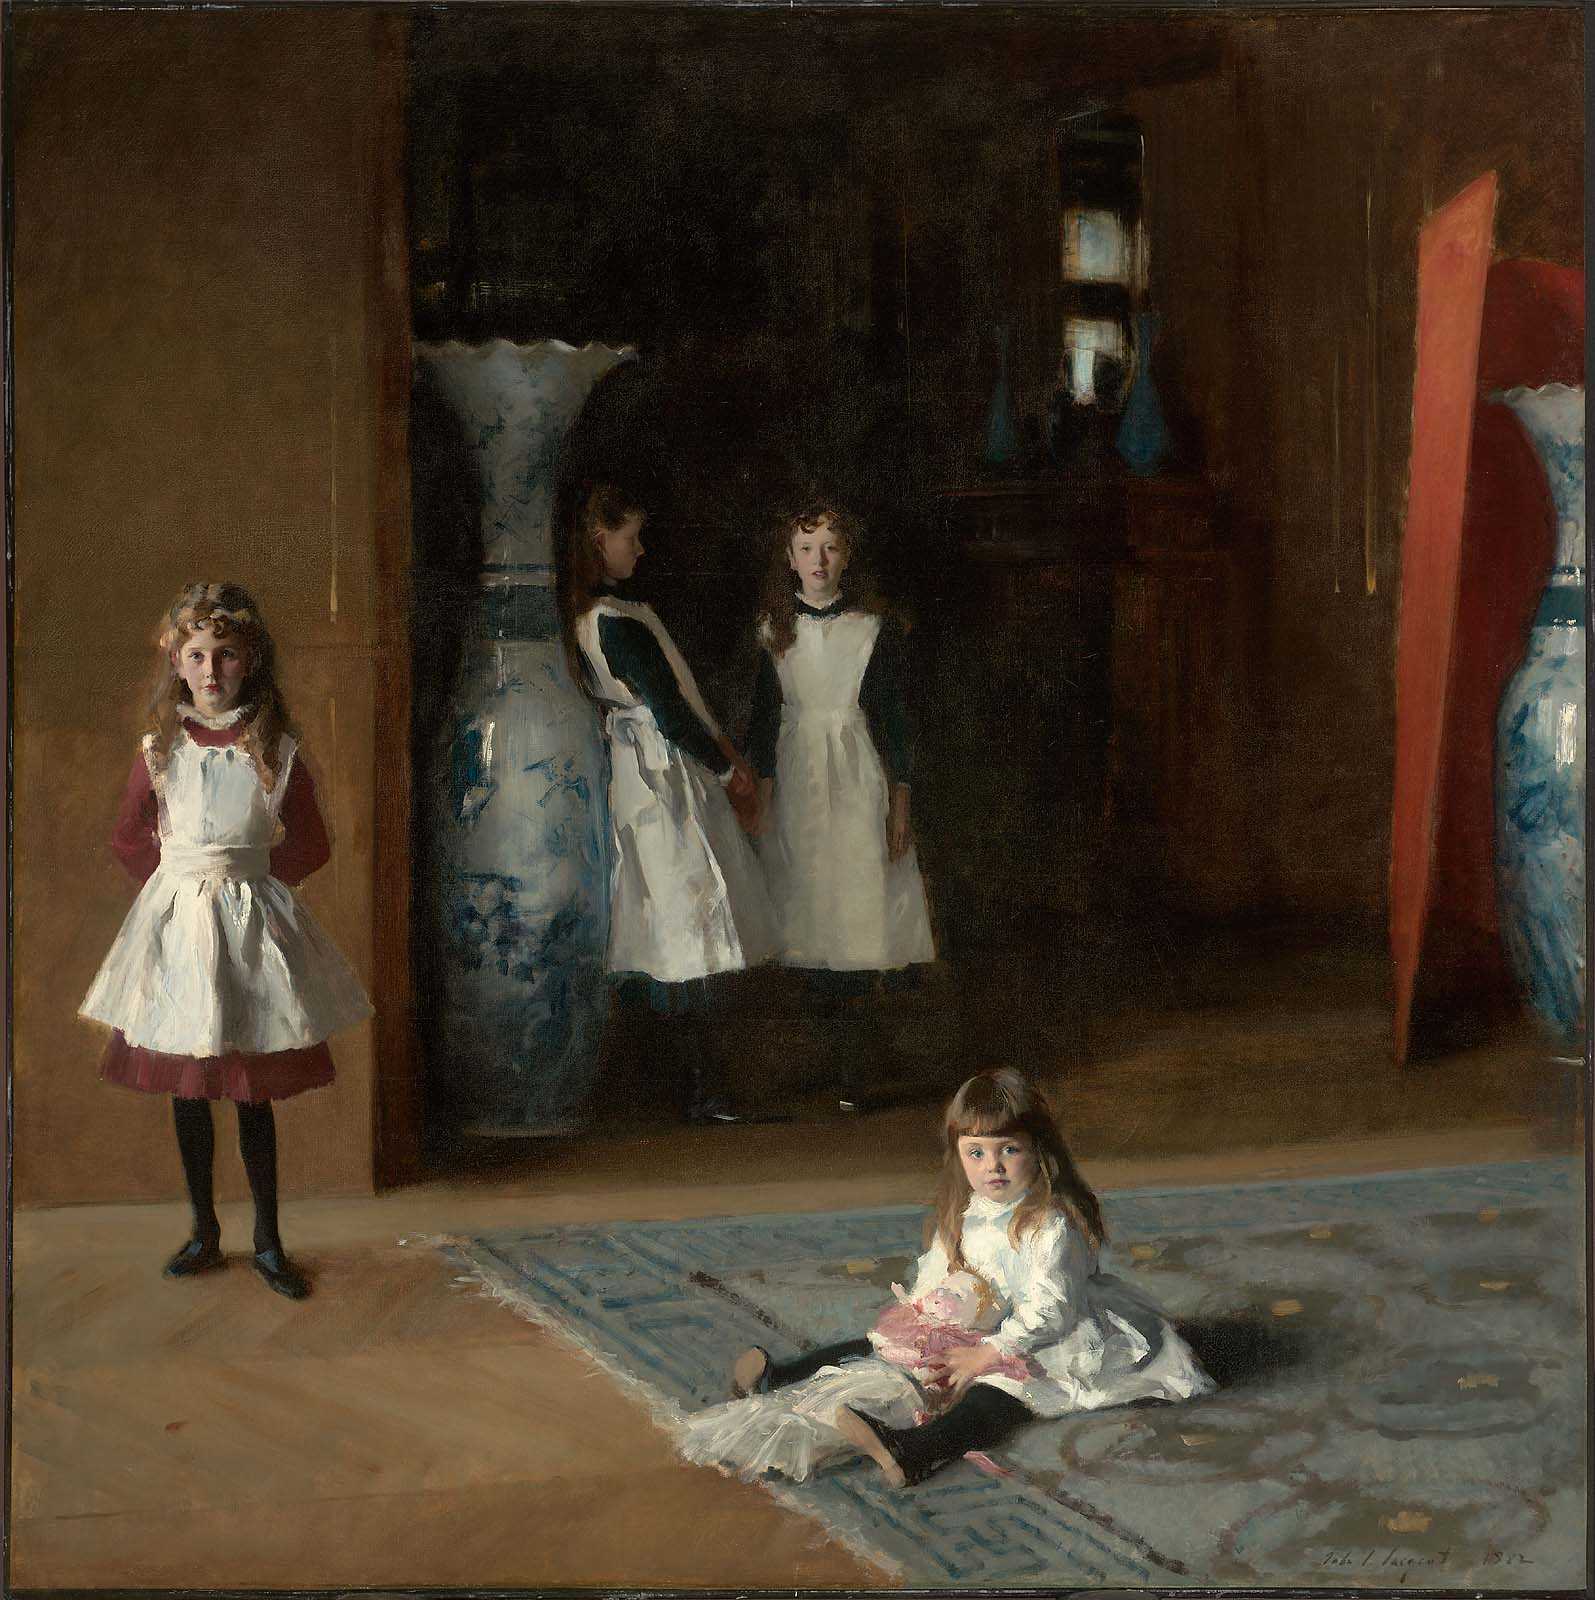 The Daughters of Edward Darley Boit, Oil on Canvas, John Singer Sargent, 1882.